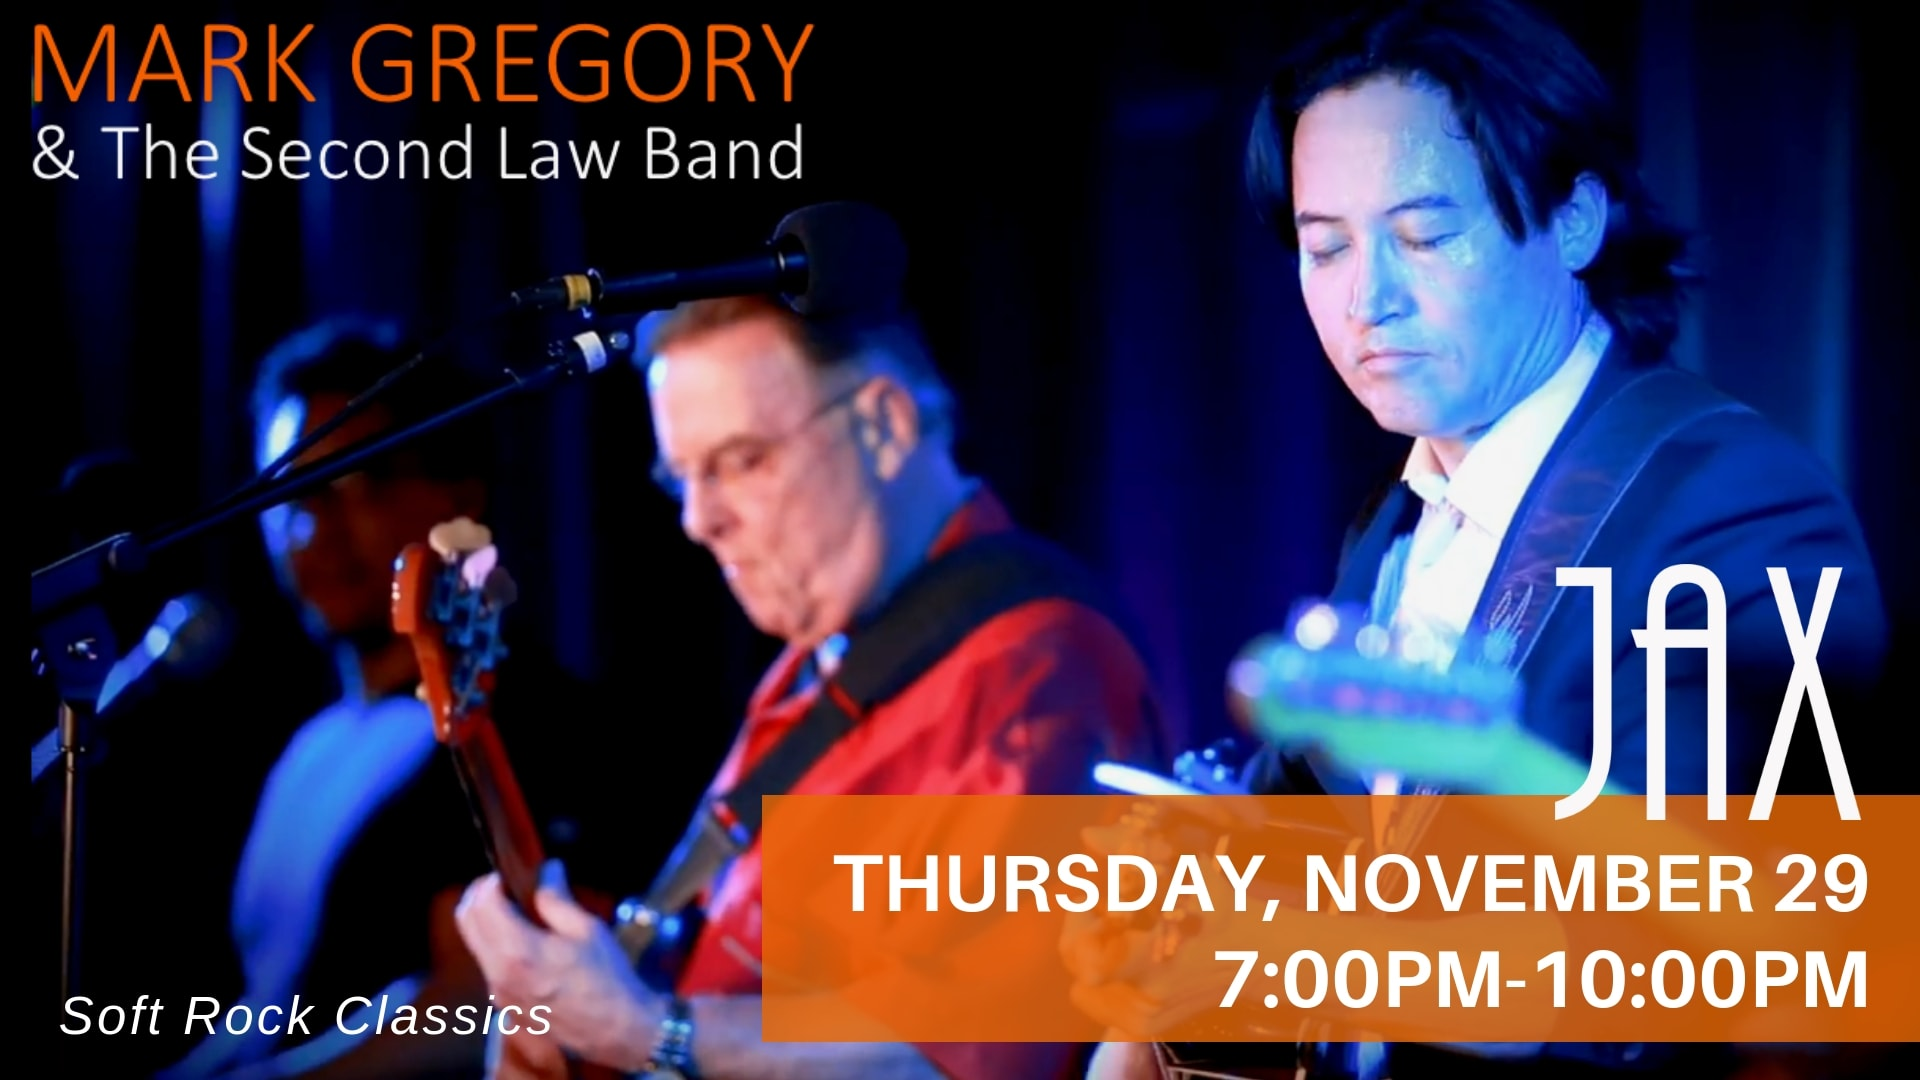 November 29 | MARK GREGORY & THE SECOND LAW BAND